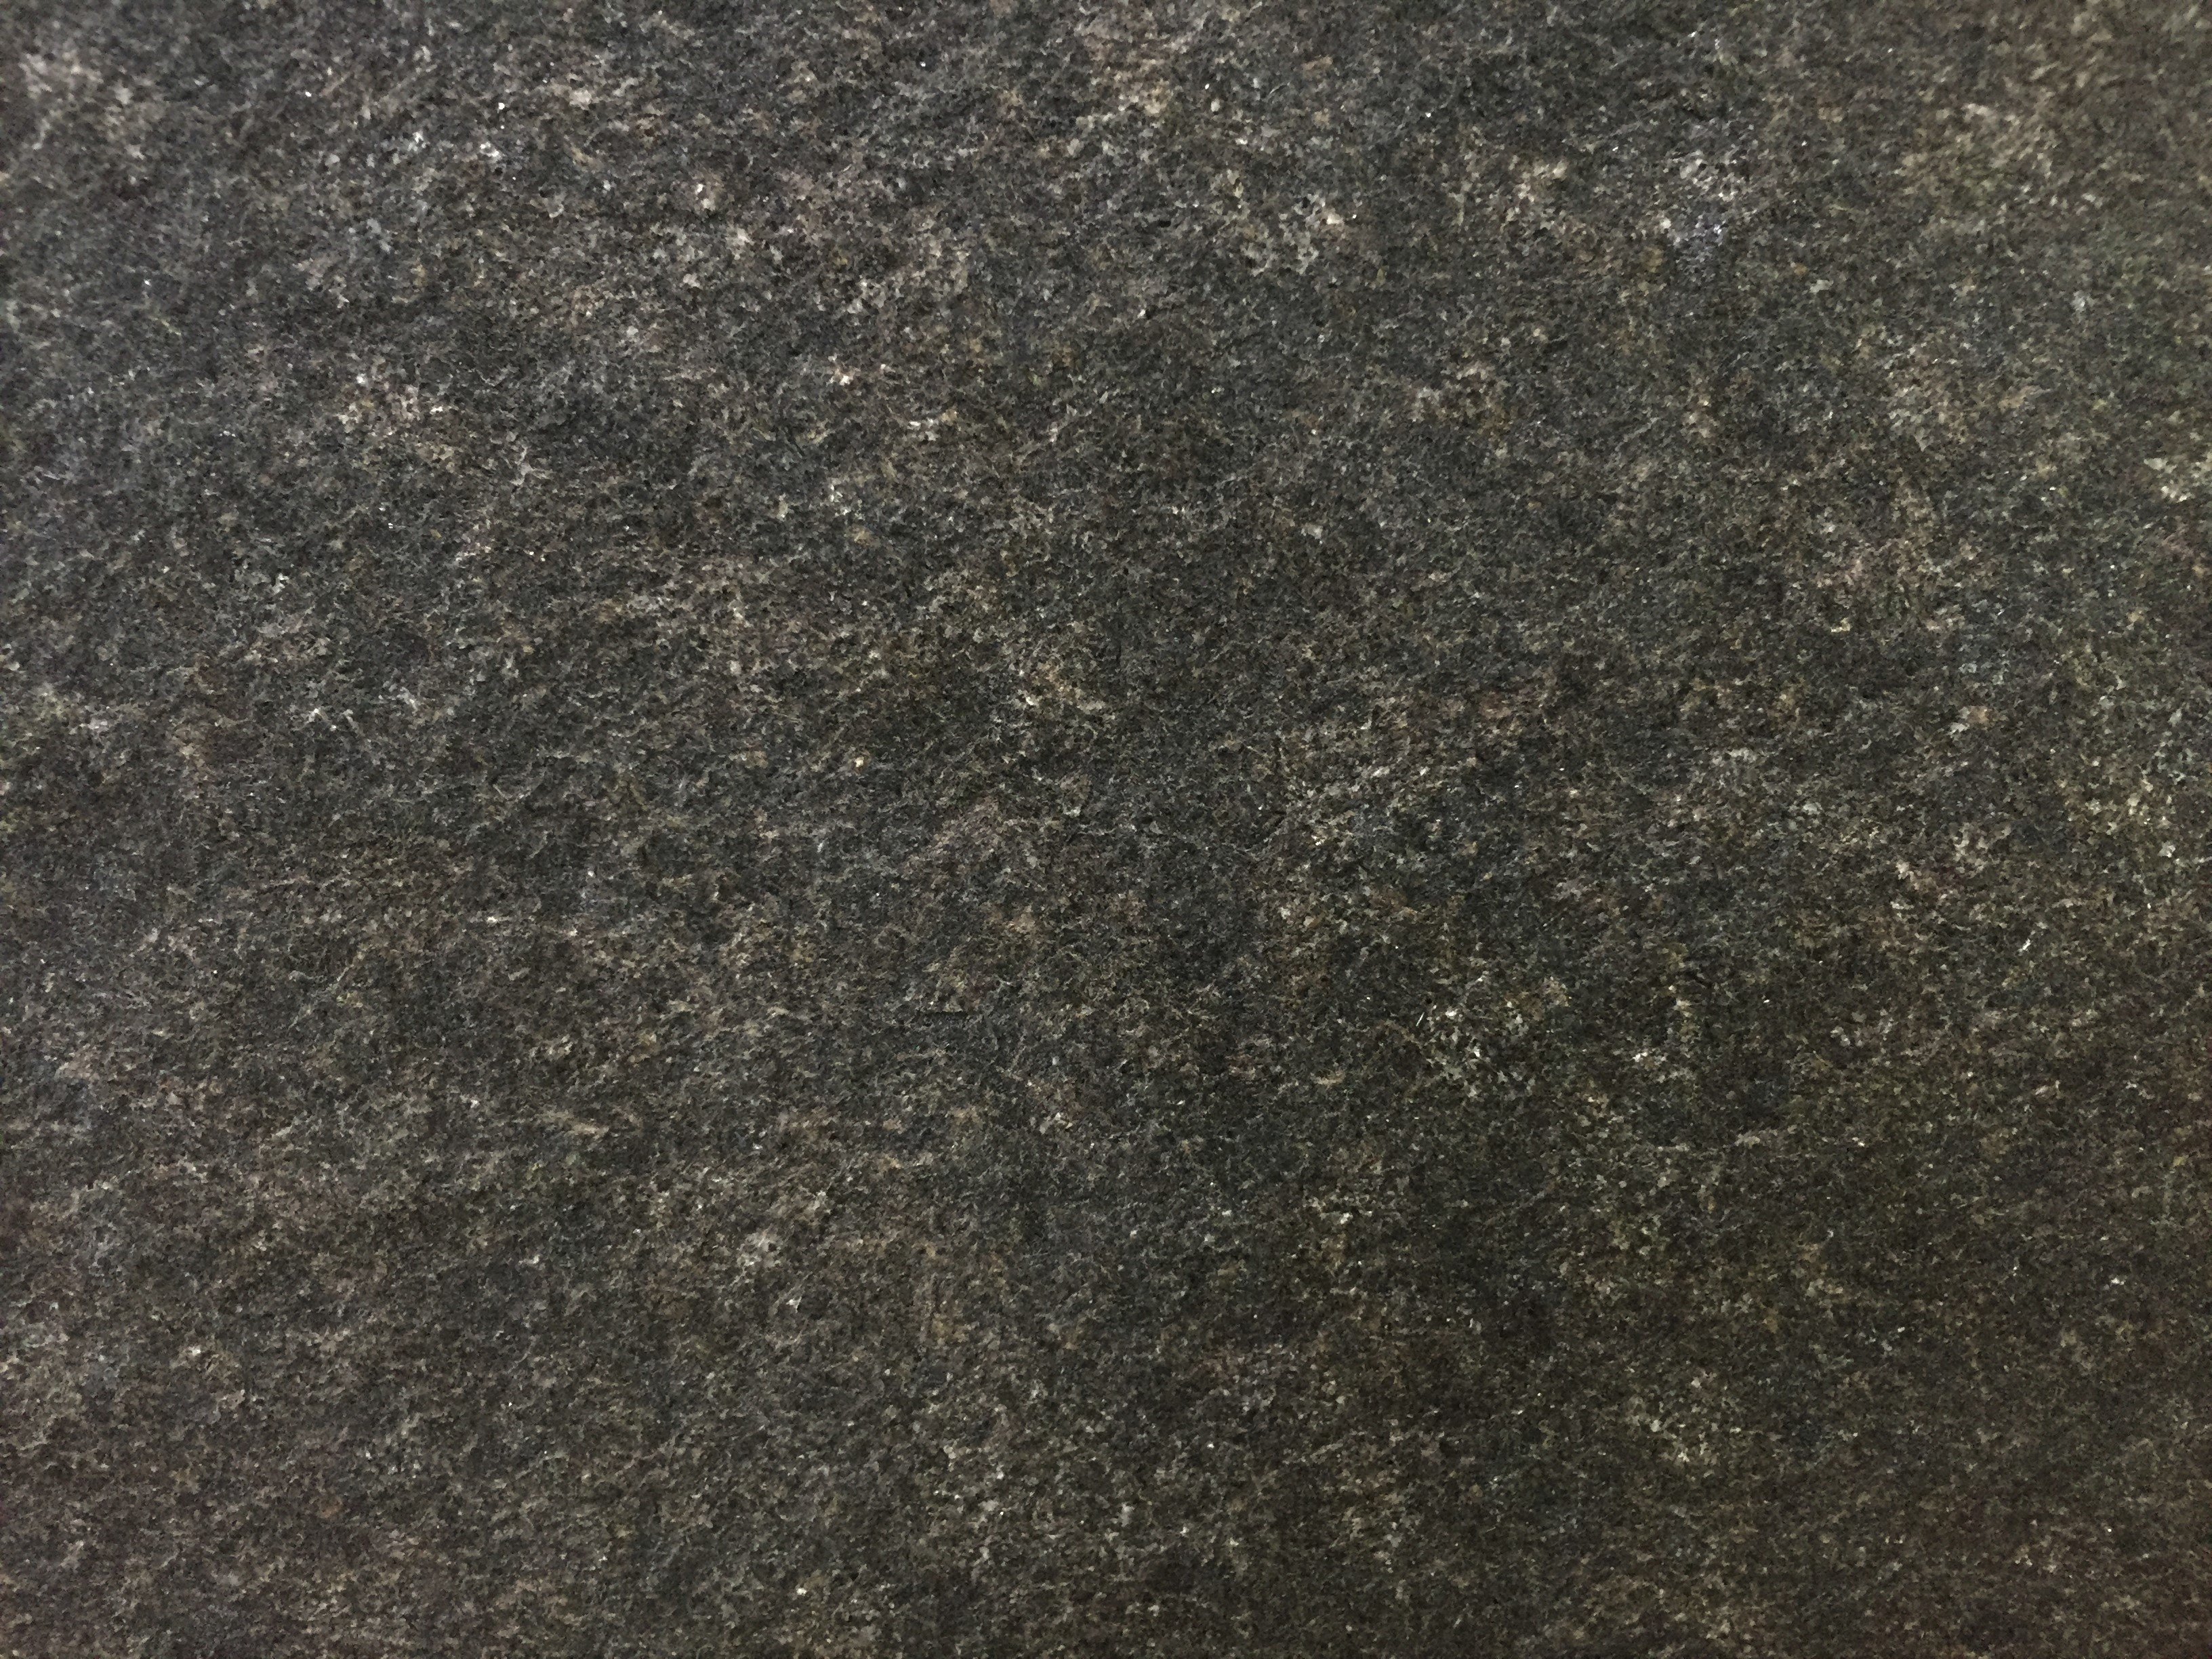 Nero Assoluto Flamed | Mondial Granit S.P.A.